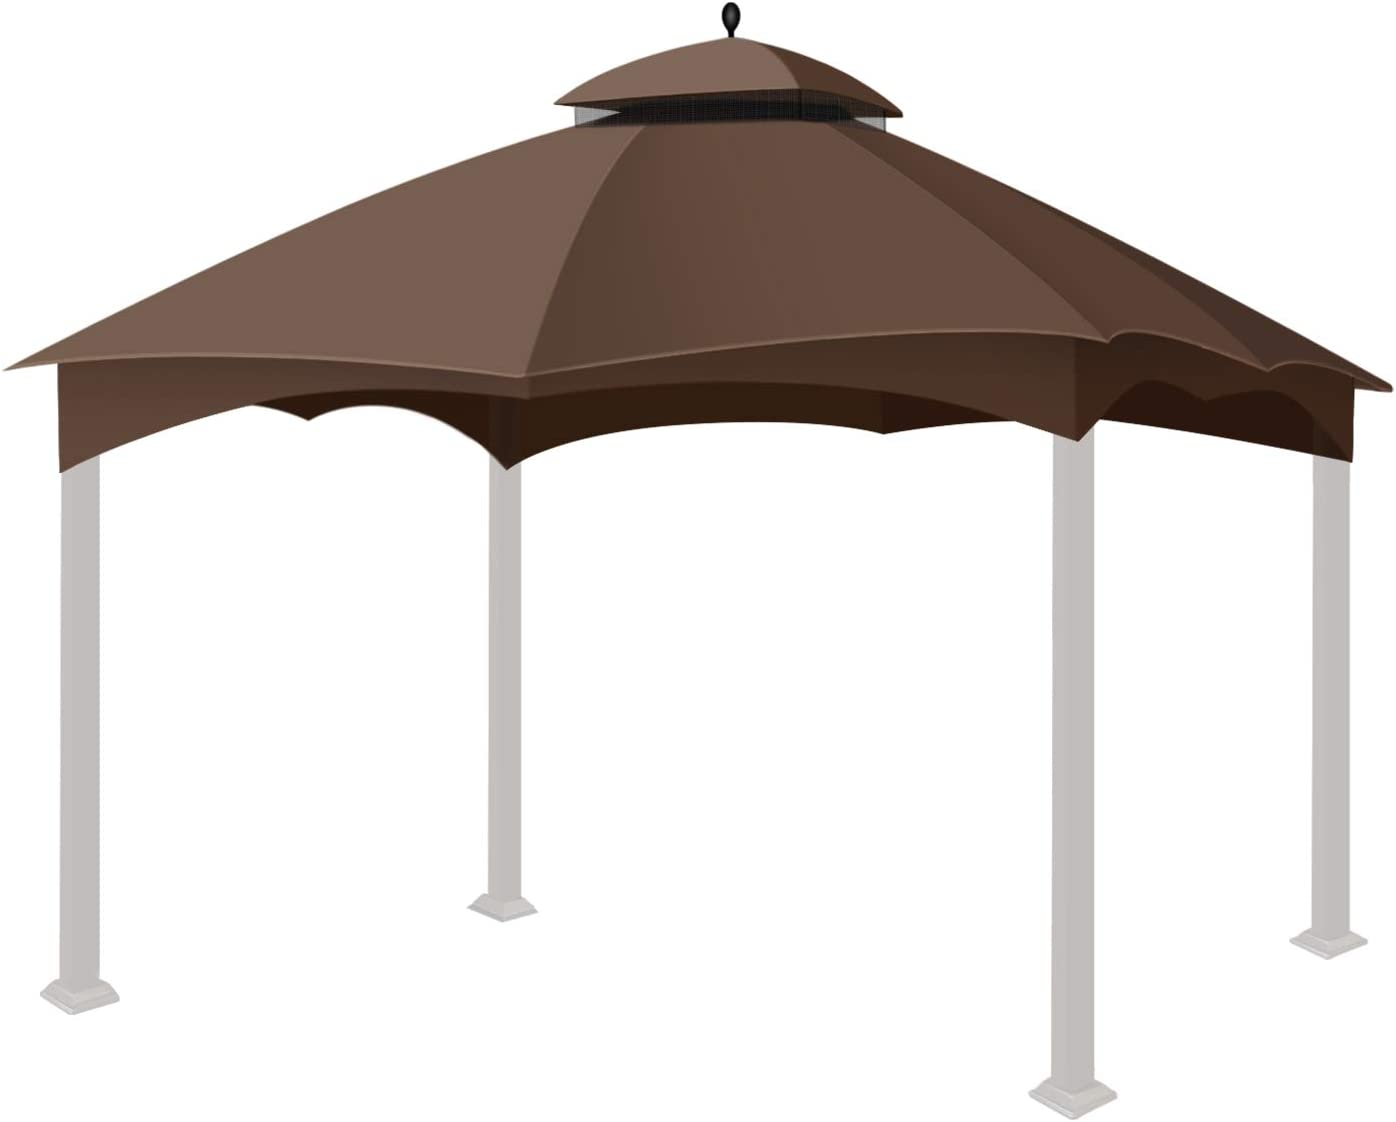 Flexzion Gazebo Replacement Canopy Top Tent for Lowe's Home Depot Allen & Roth 10 X 12 Feet UV UPF 50+ Dual Tier Plain Edge Water-Resistant Cover Shade Outdoor Garden Backyard Patio Gazebo (Brown)